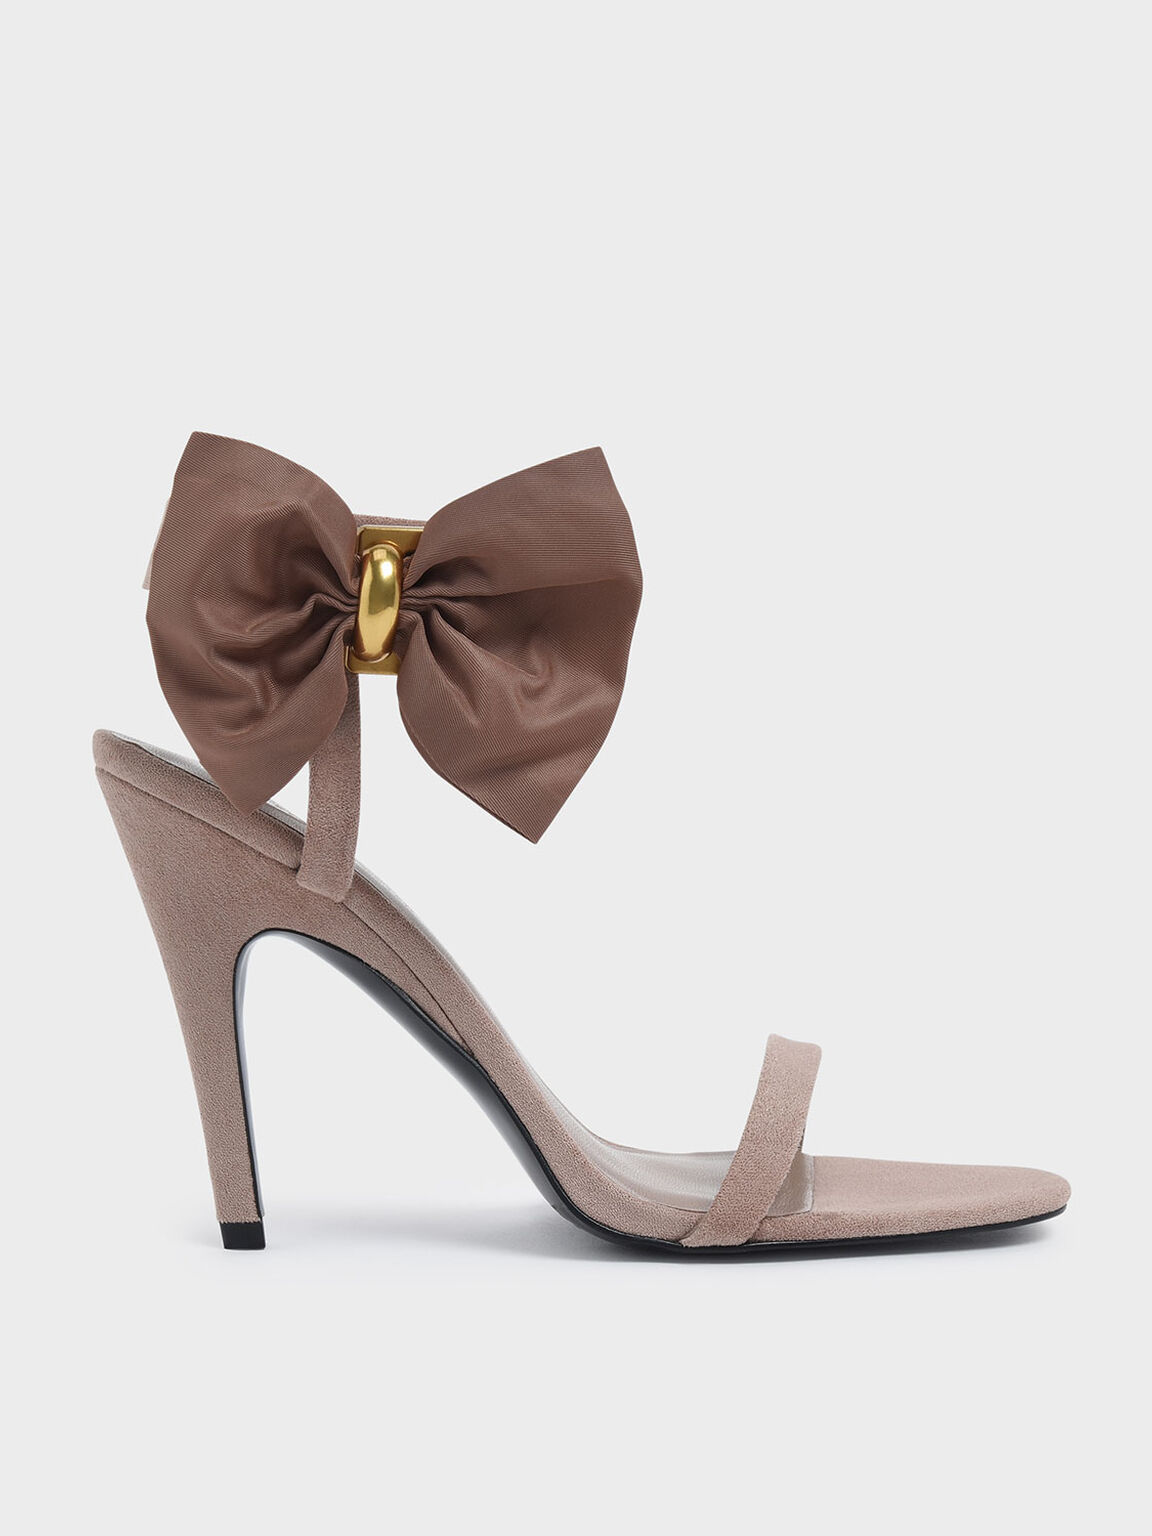 Oversized Bow Open Toe Heeled Sandals, Nude, hi-res